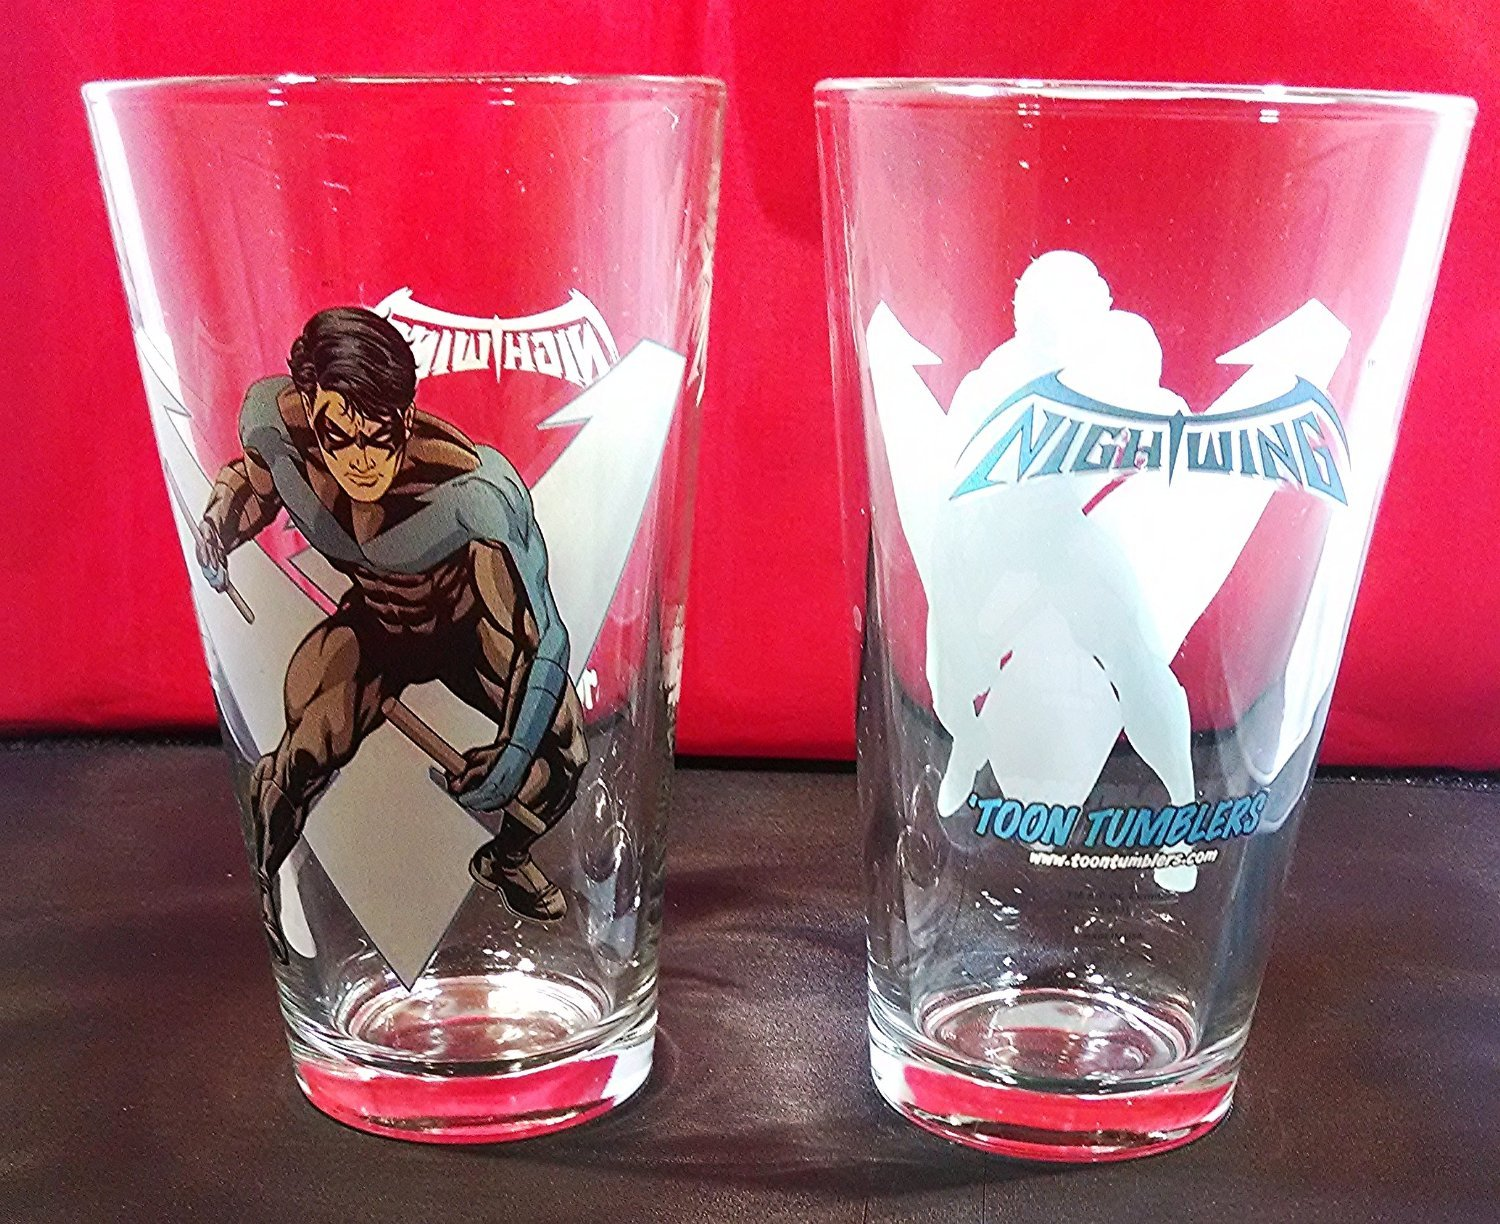 Pint Glass - DC Comics - Nightwing Toon Tumbler 16oz Cup New Toys TT0138 Pop Fun Merchandising COMINHKPR68143